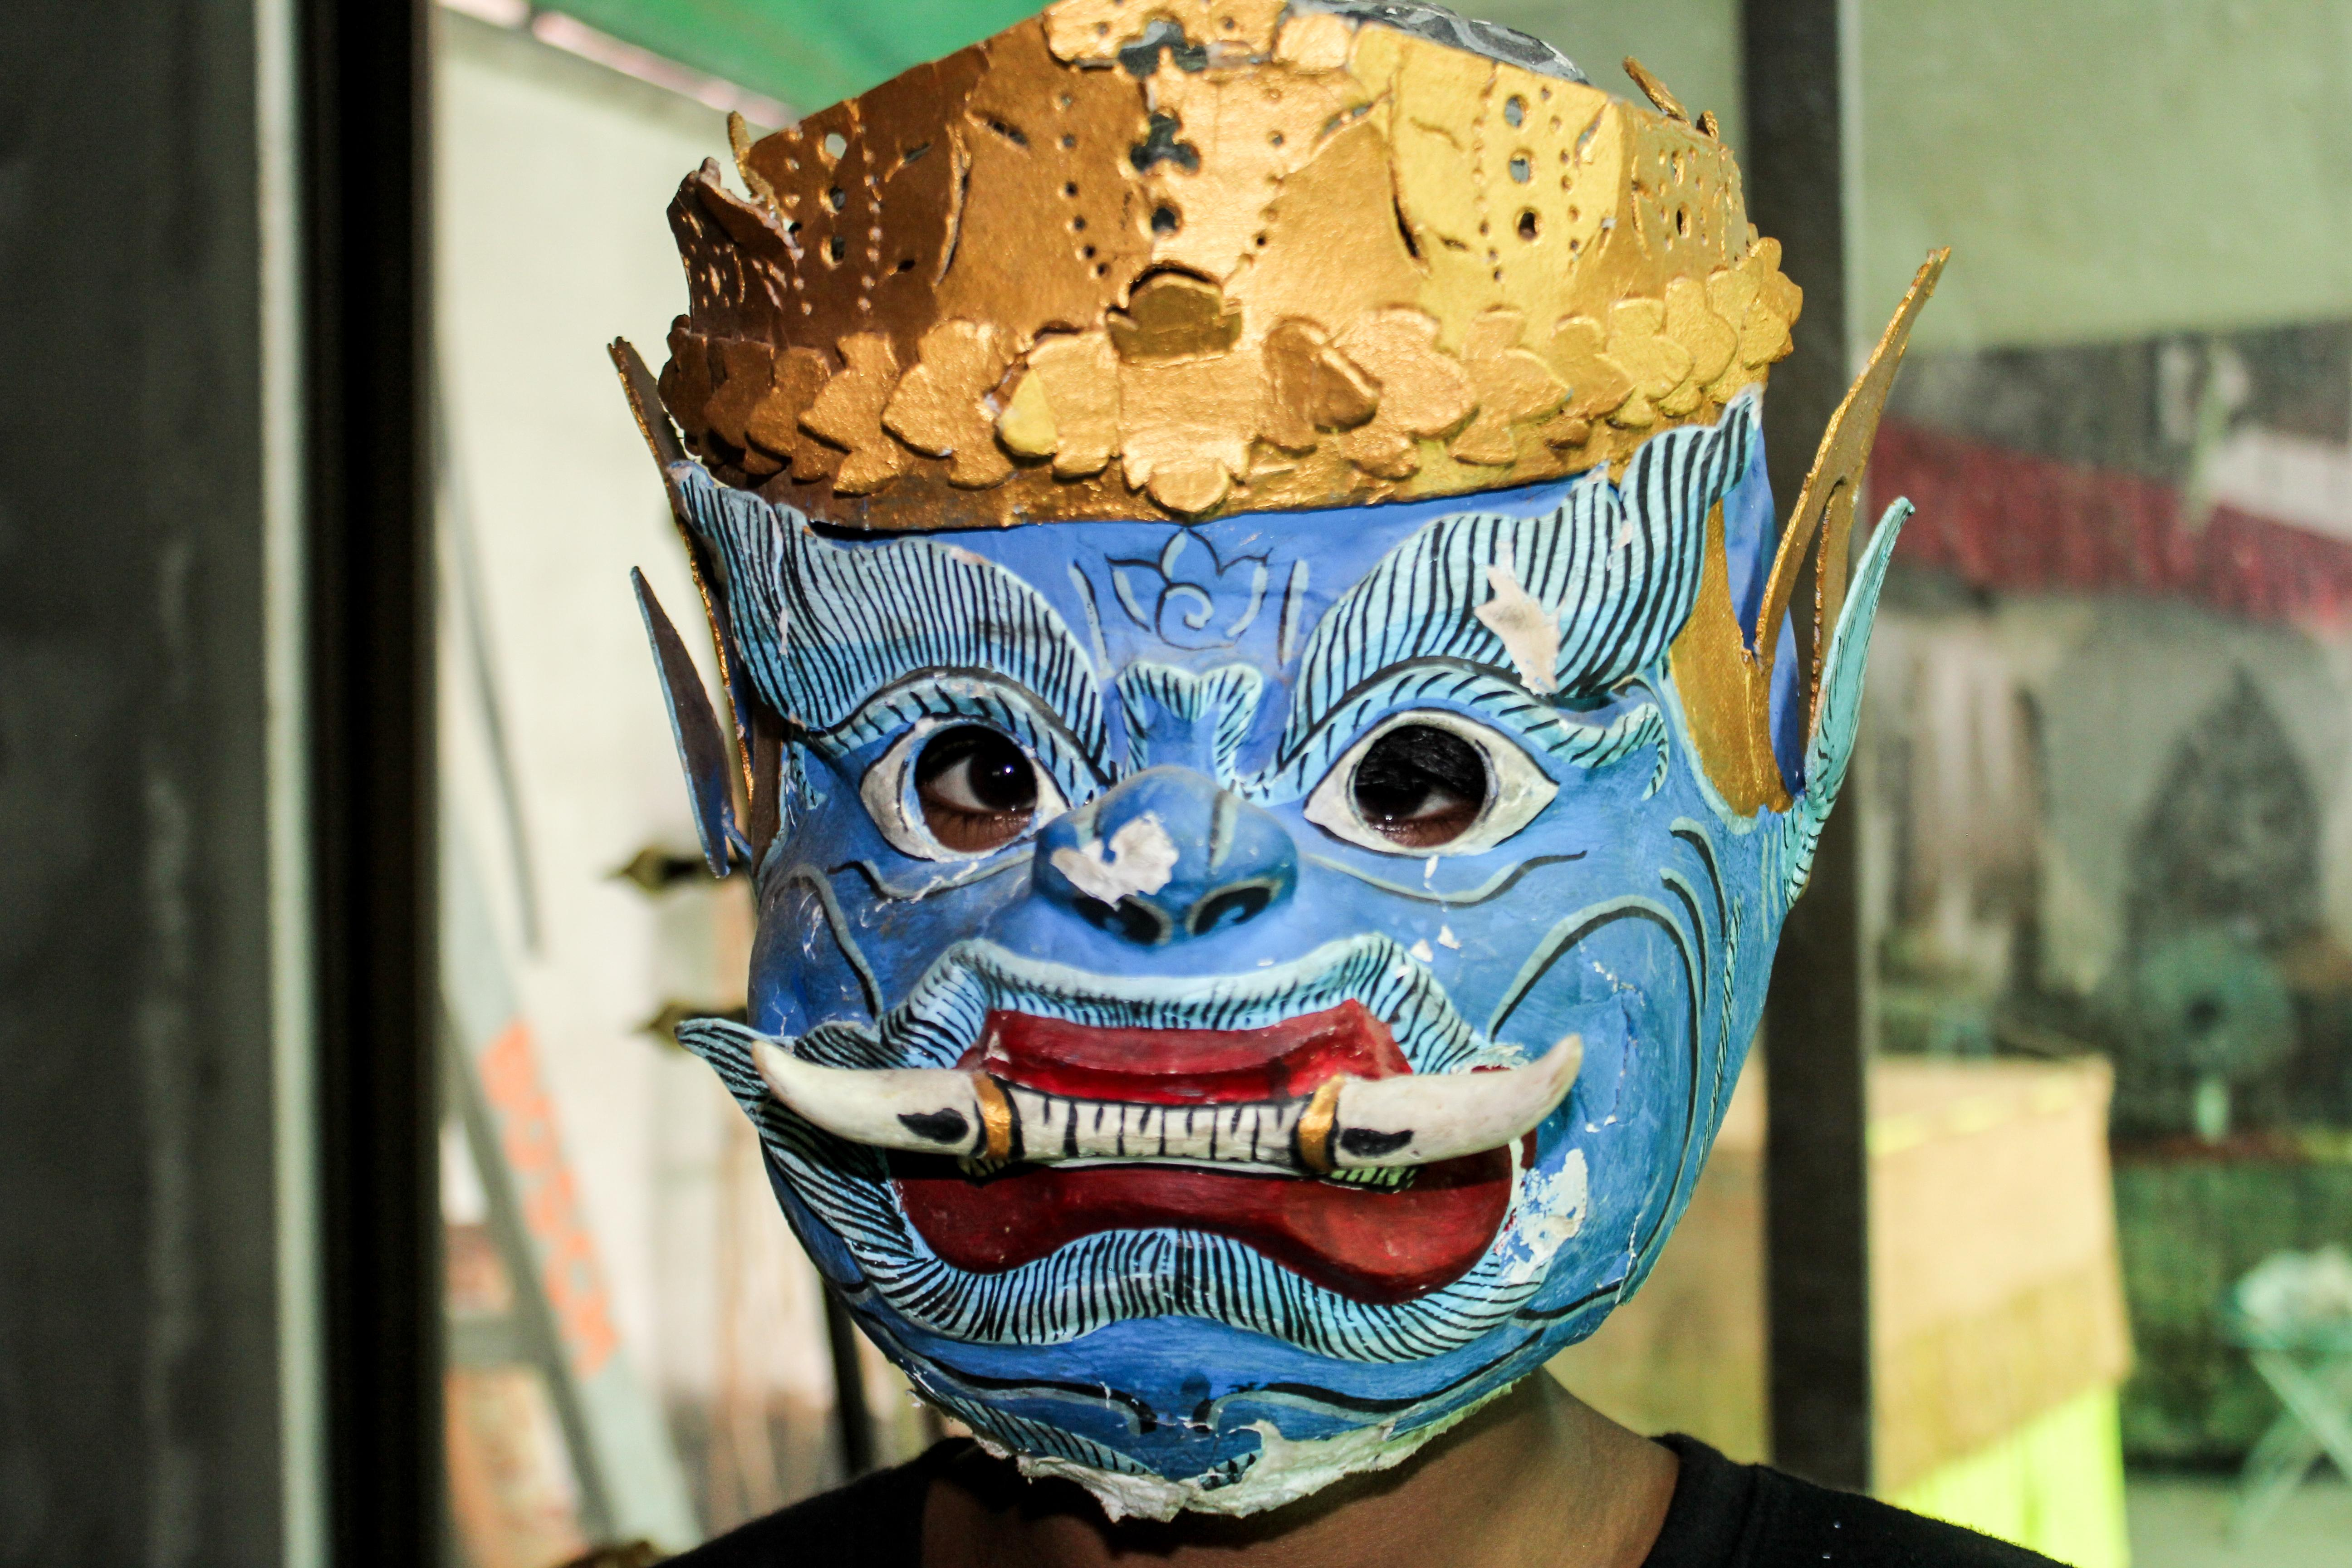 A volunteer over 50 learning about the Khmer culture in Cambodia, wears a traditional mask.